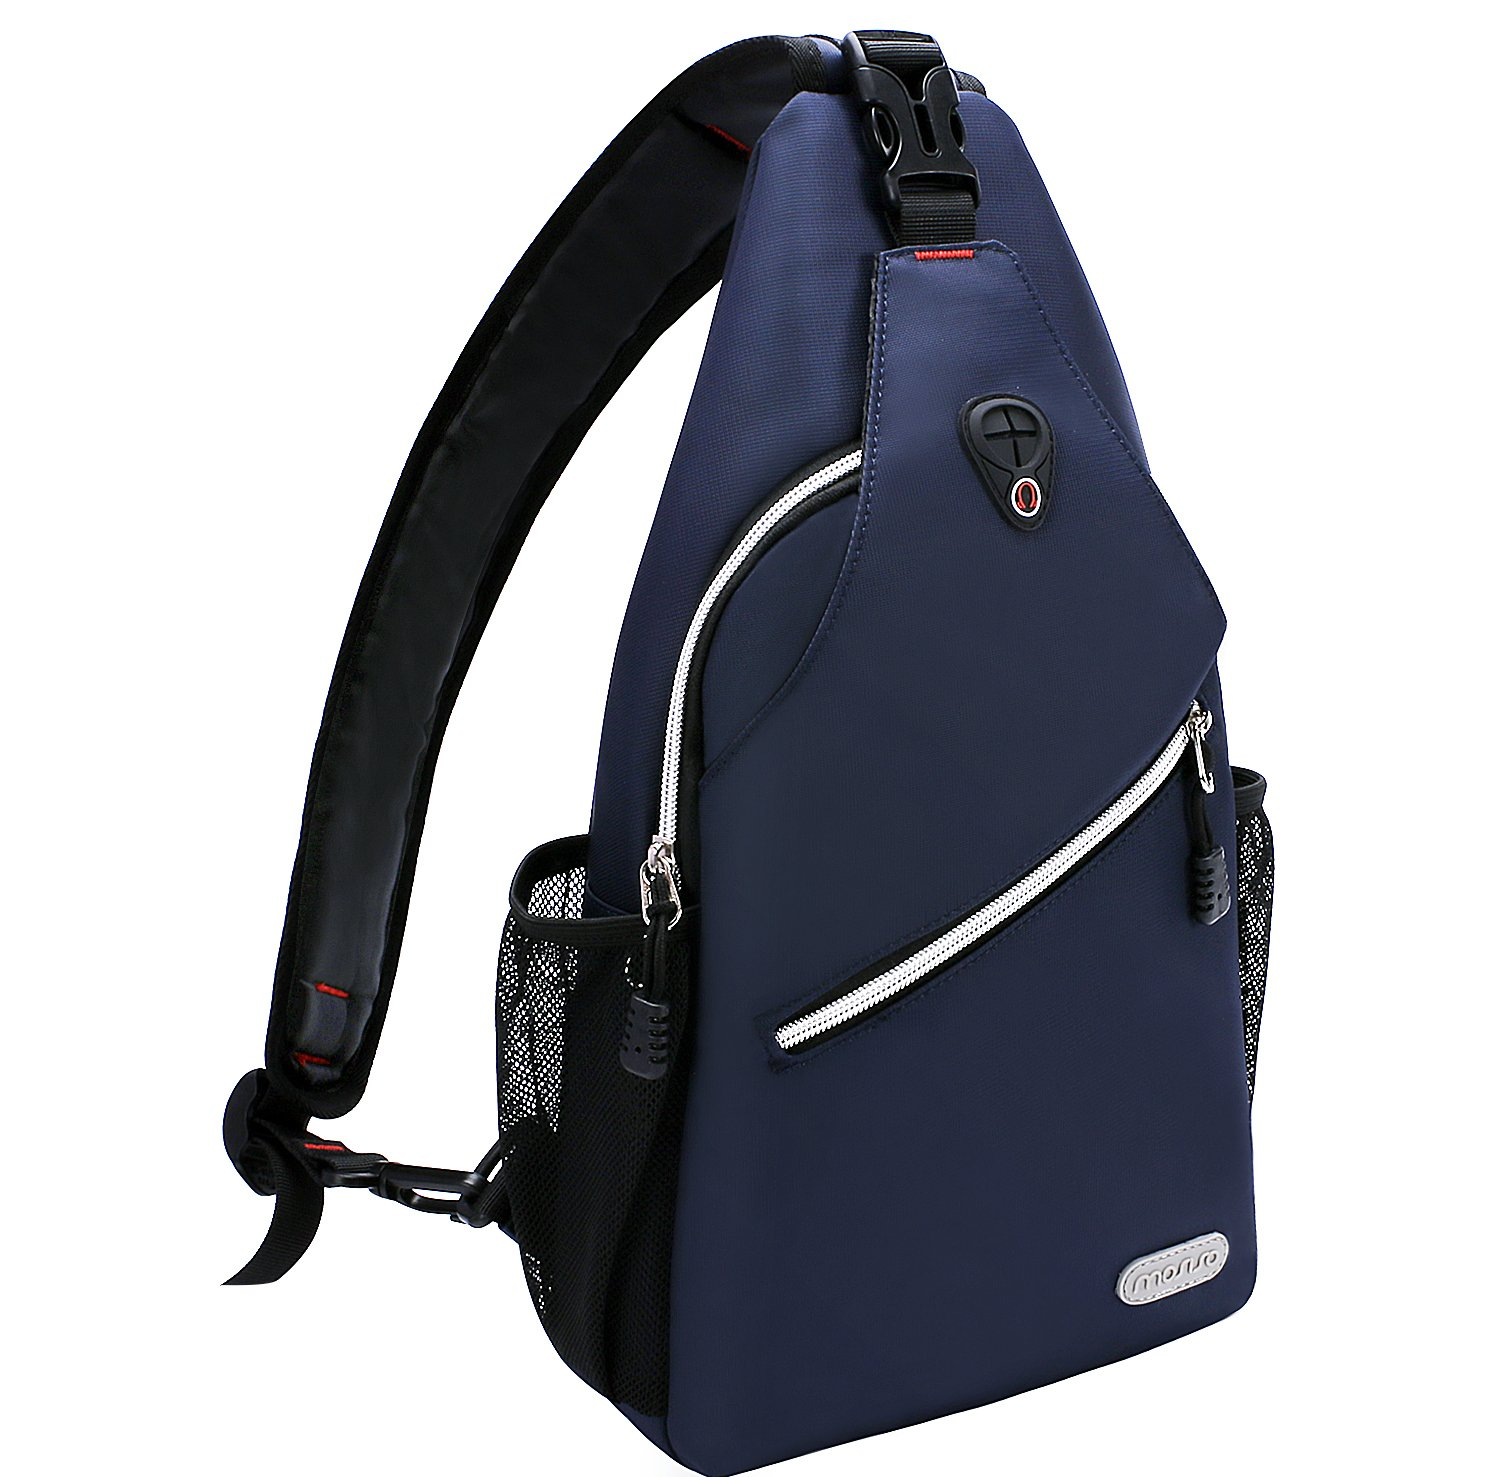 MOSISO Sling Backpack, Polyester Crossbody Shoulder Bag for Men Women Girls Boys, Navy Blue